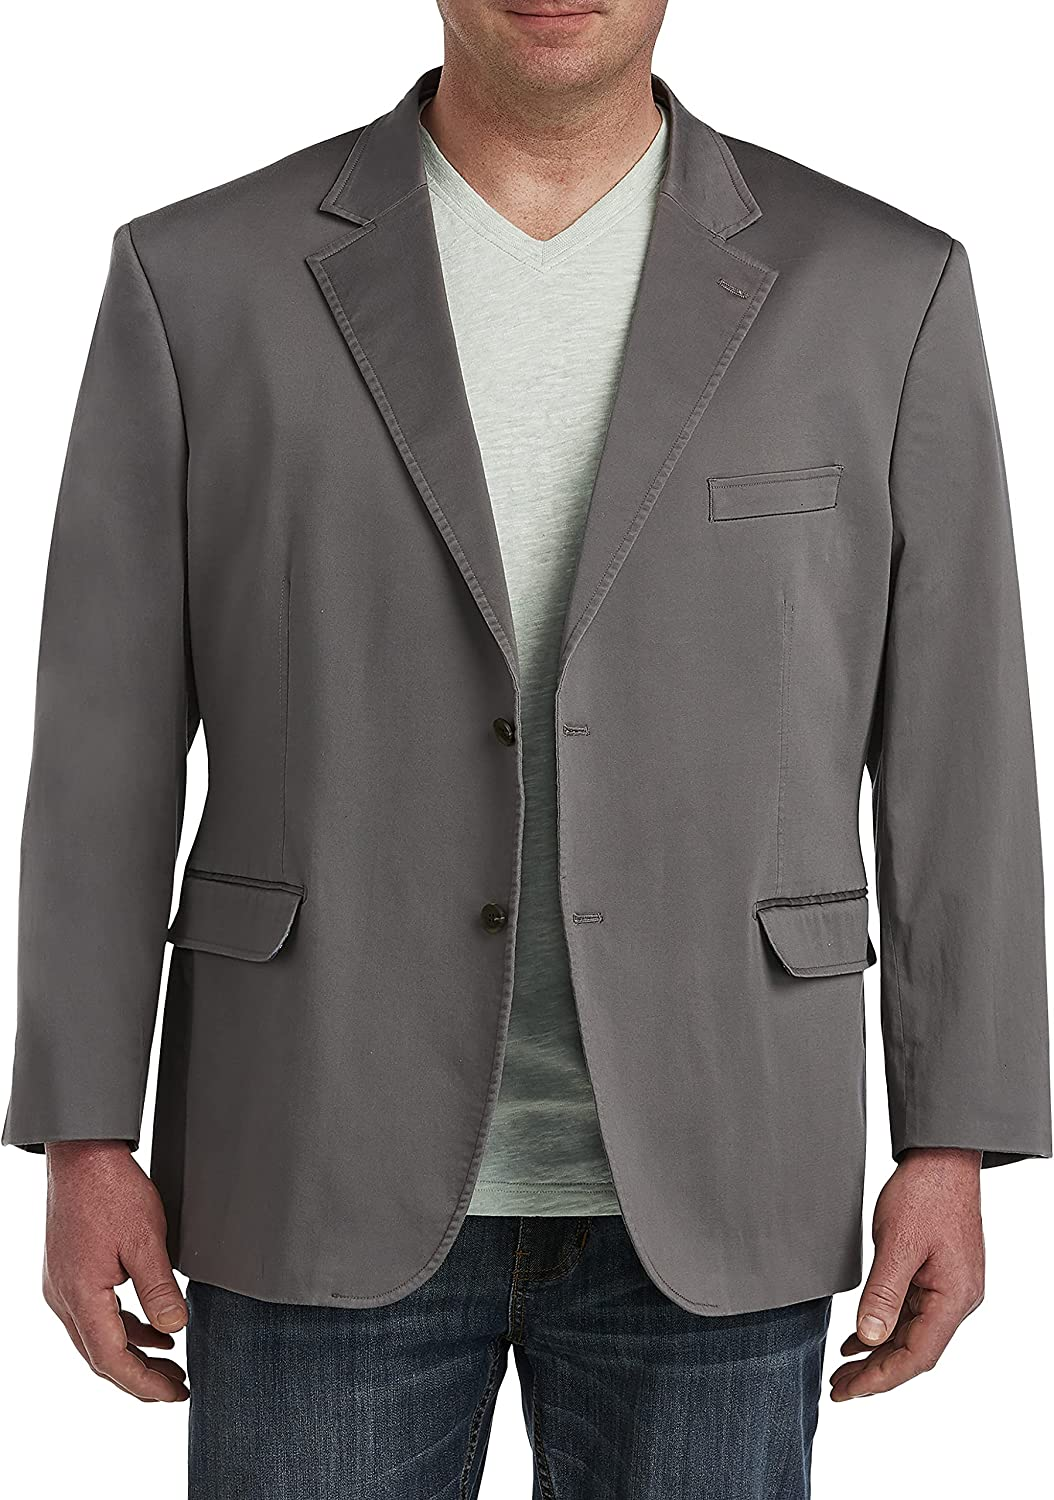 Oak Hill by DXL Big and Tall Cotton Sport Coat, Grey Wash